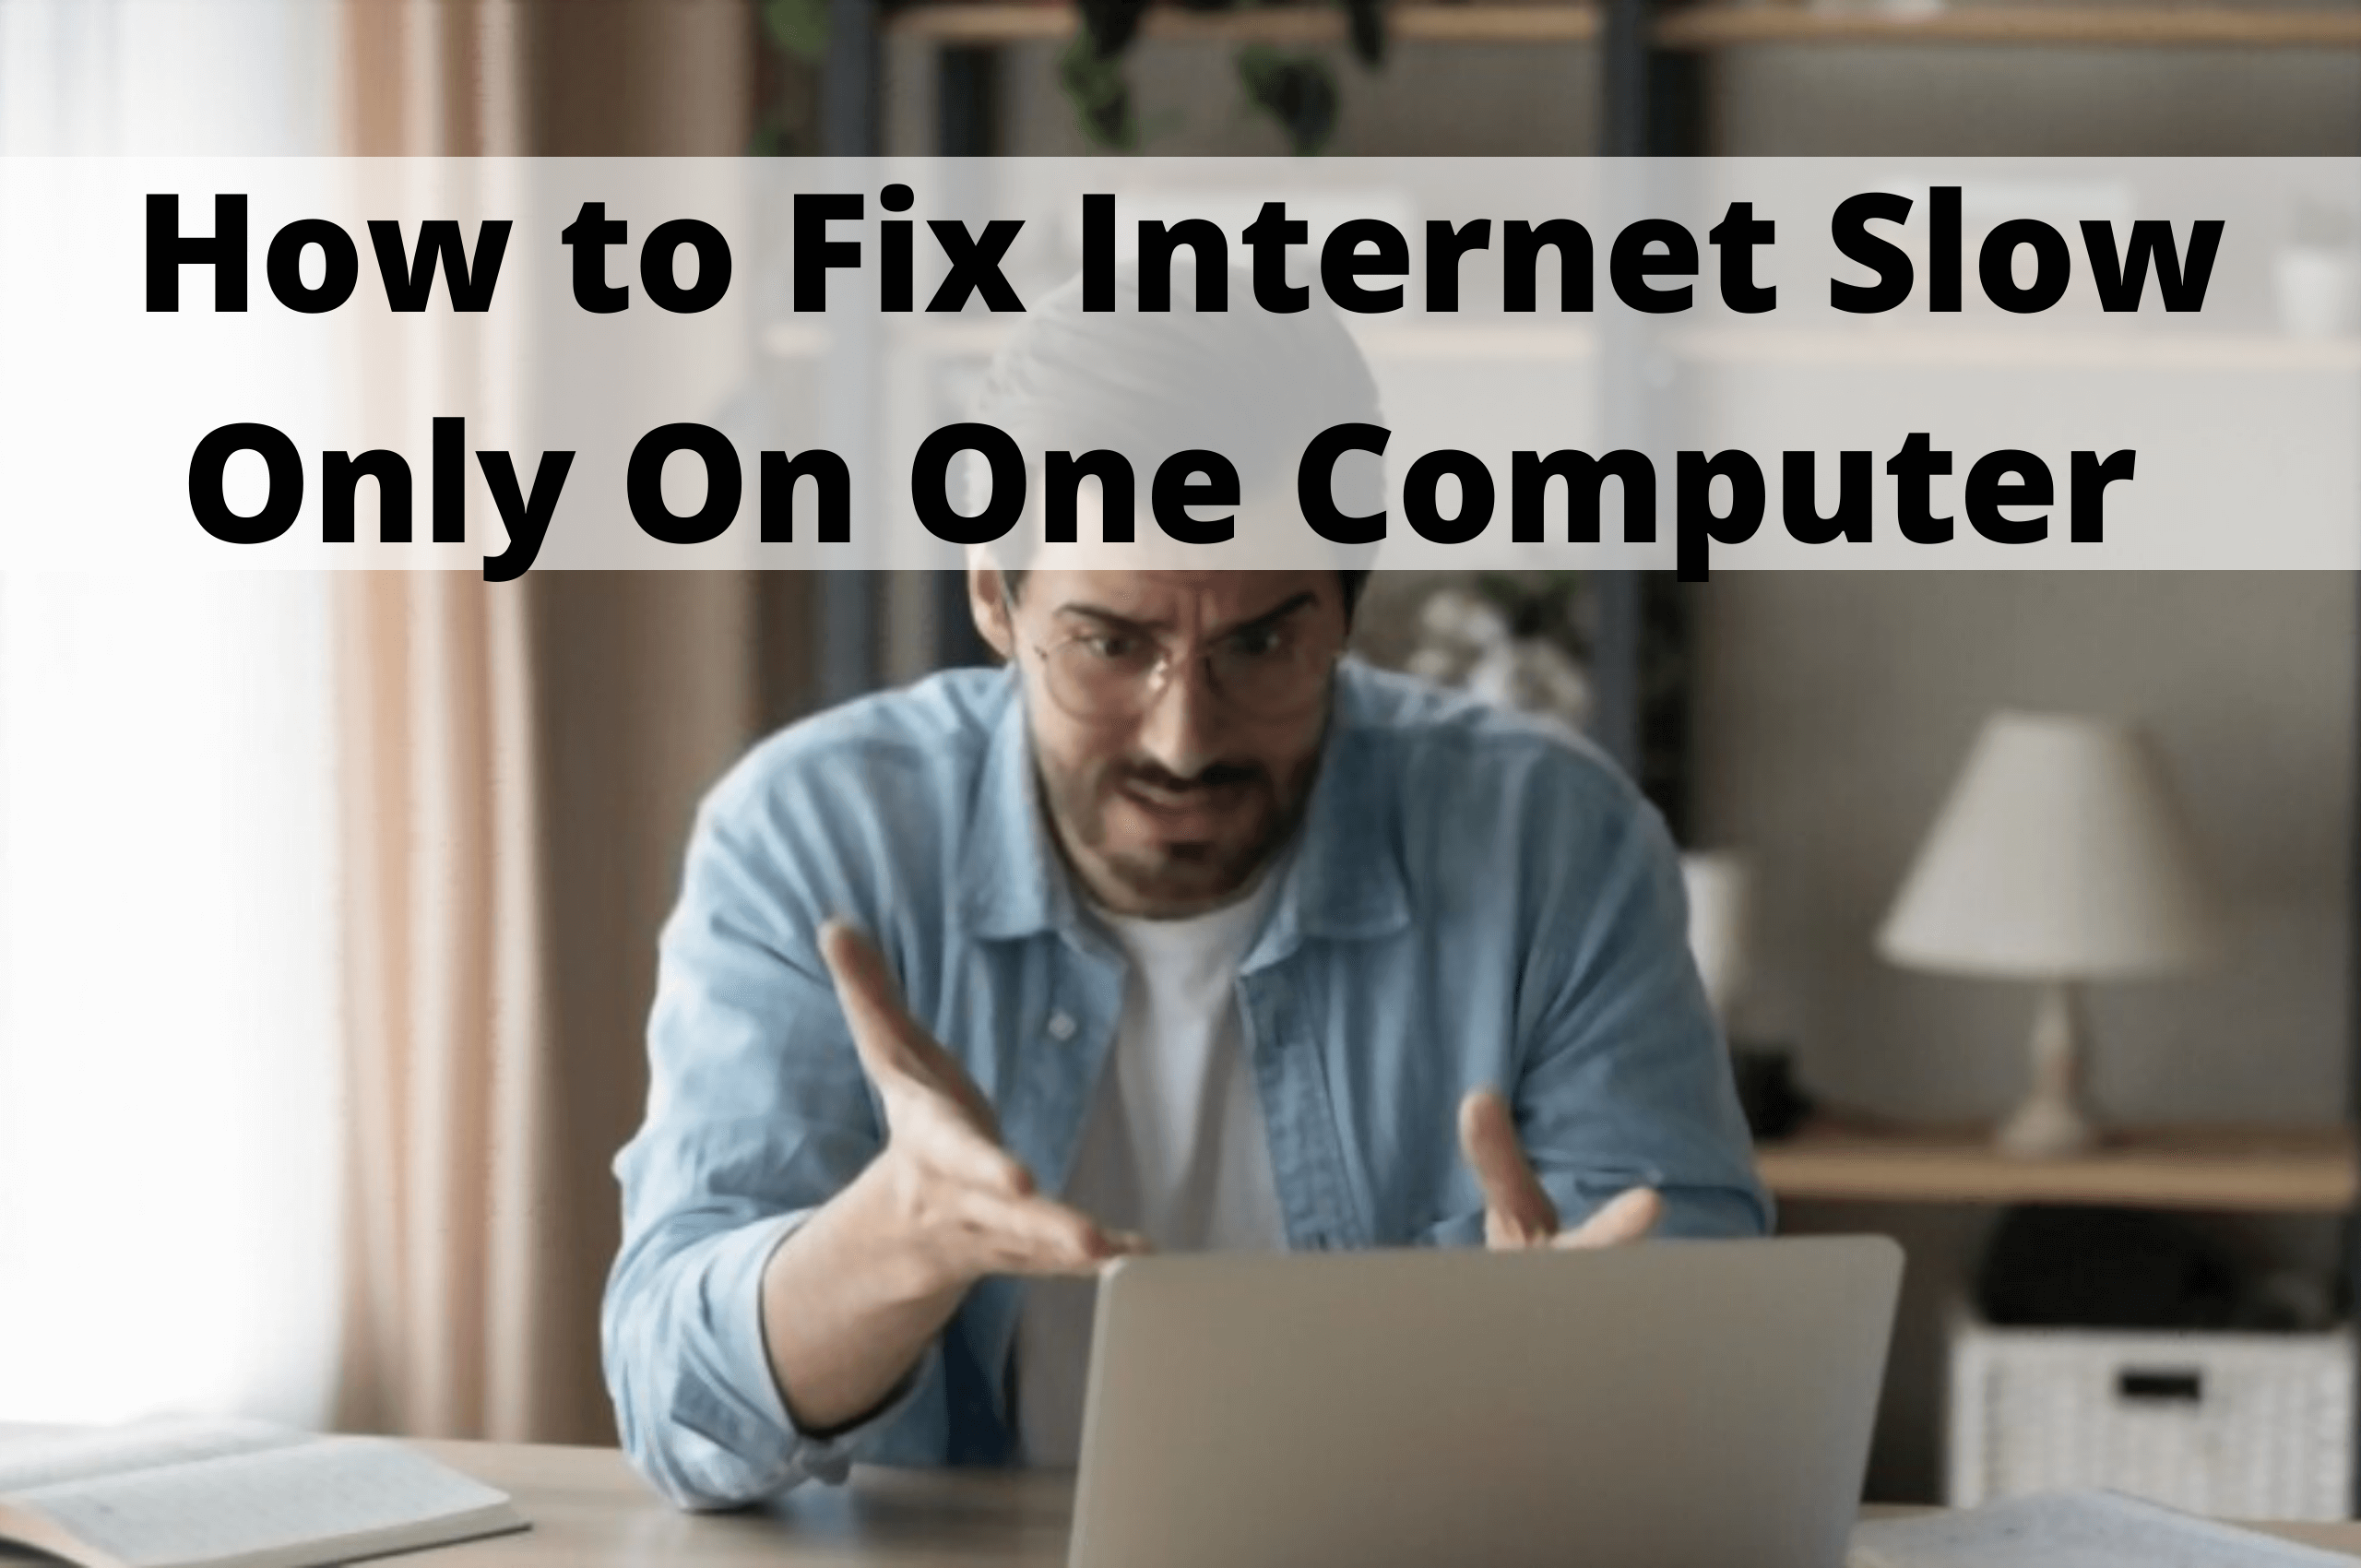 internet slow on one computer